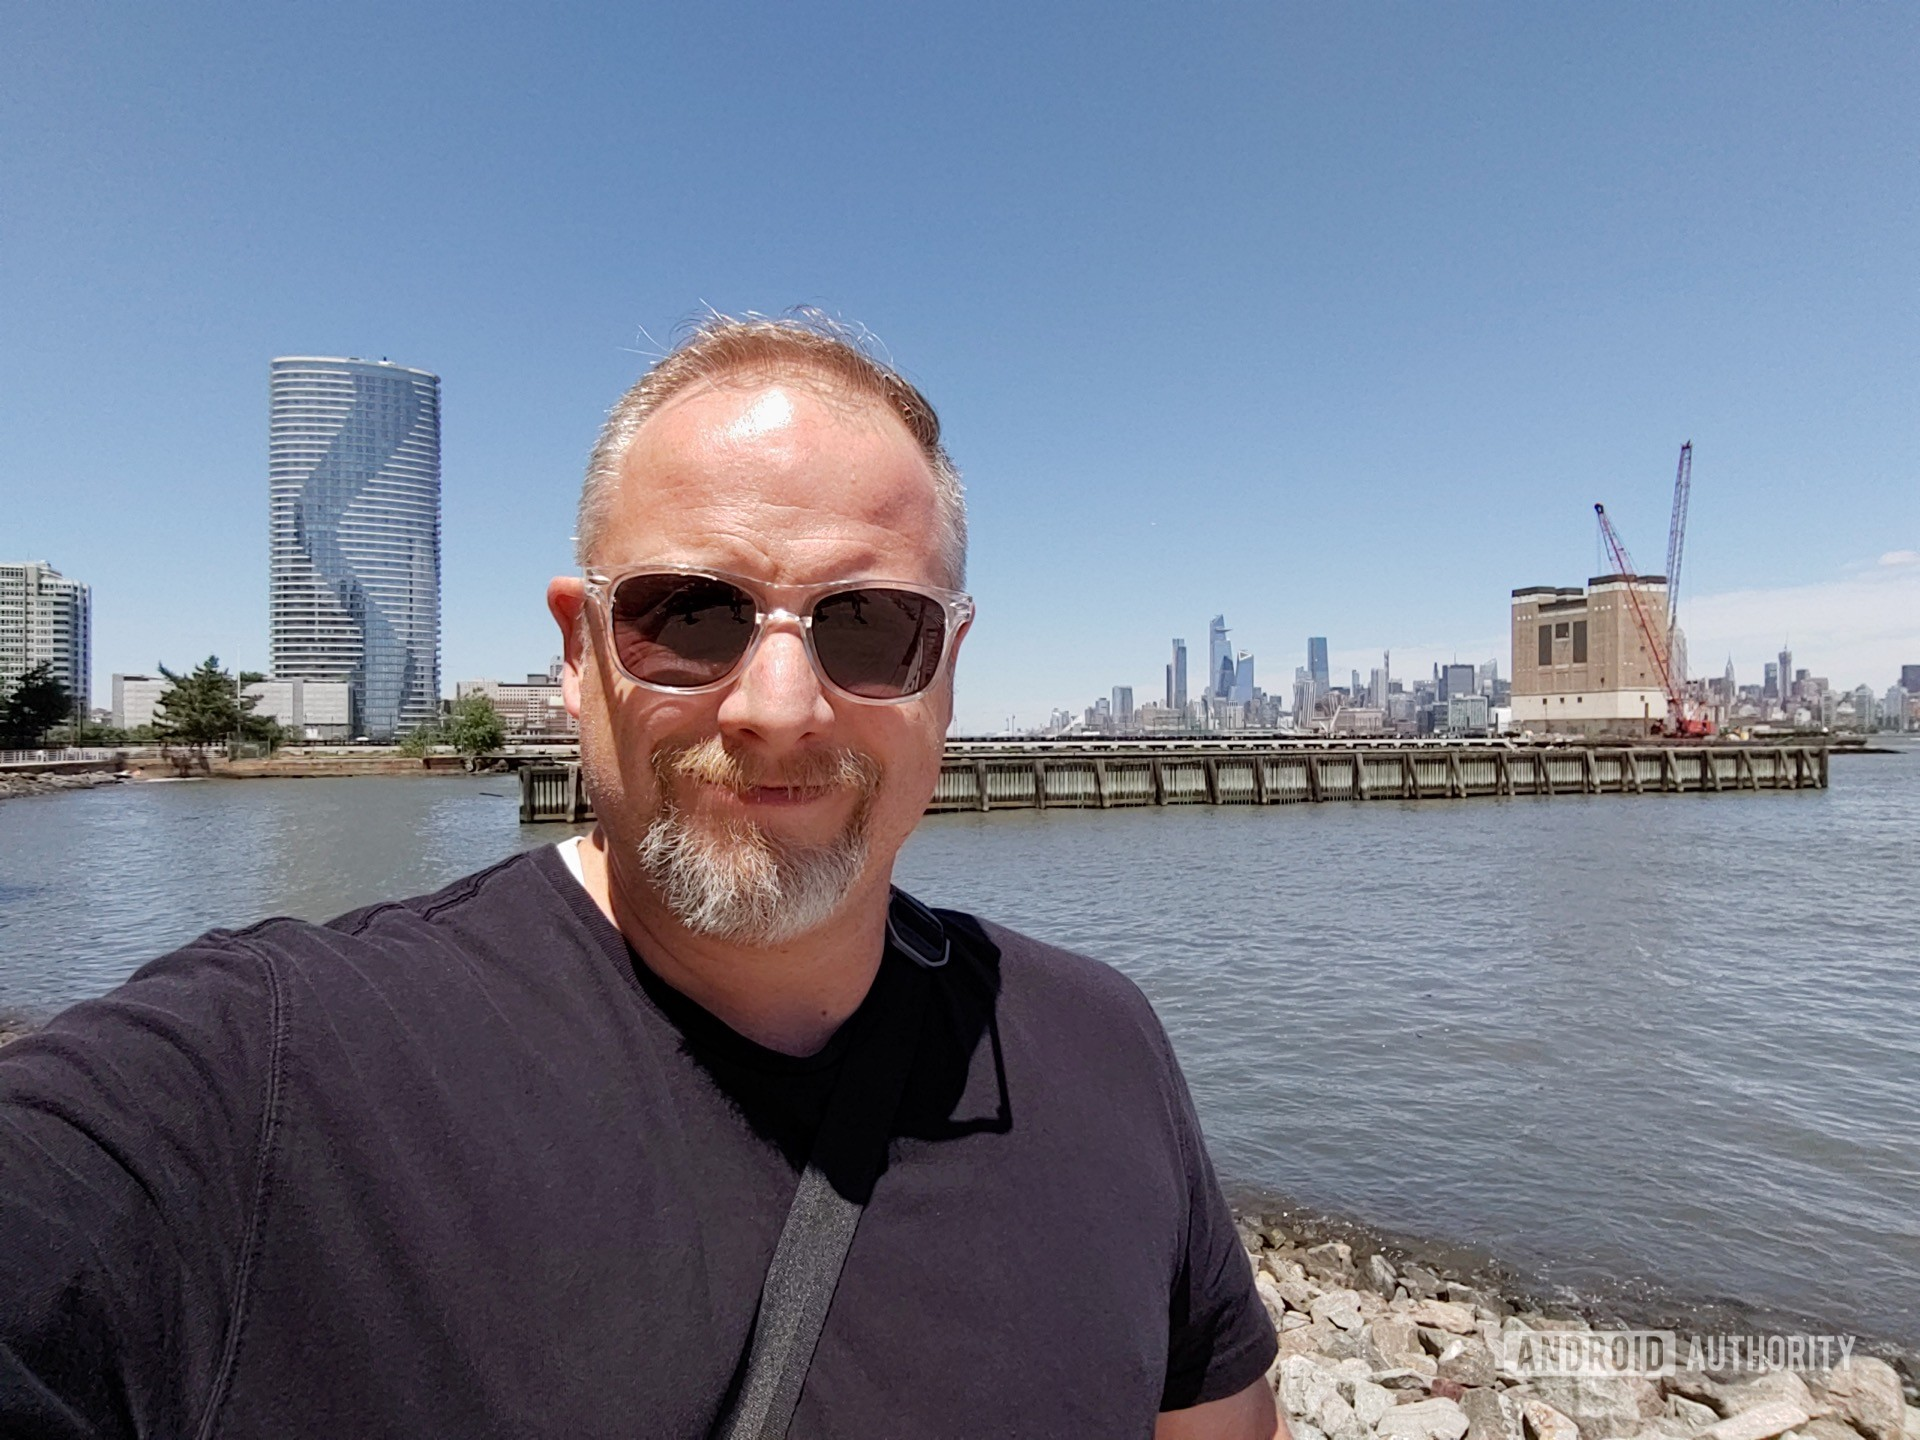 LG V50 ThinQ Review sample photo wide angle selfie